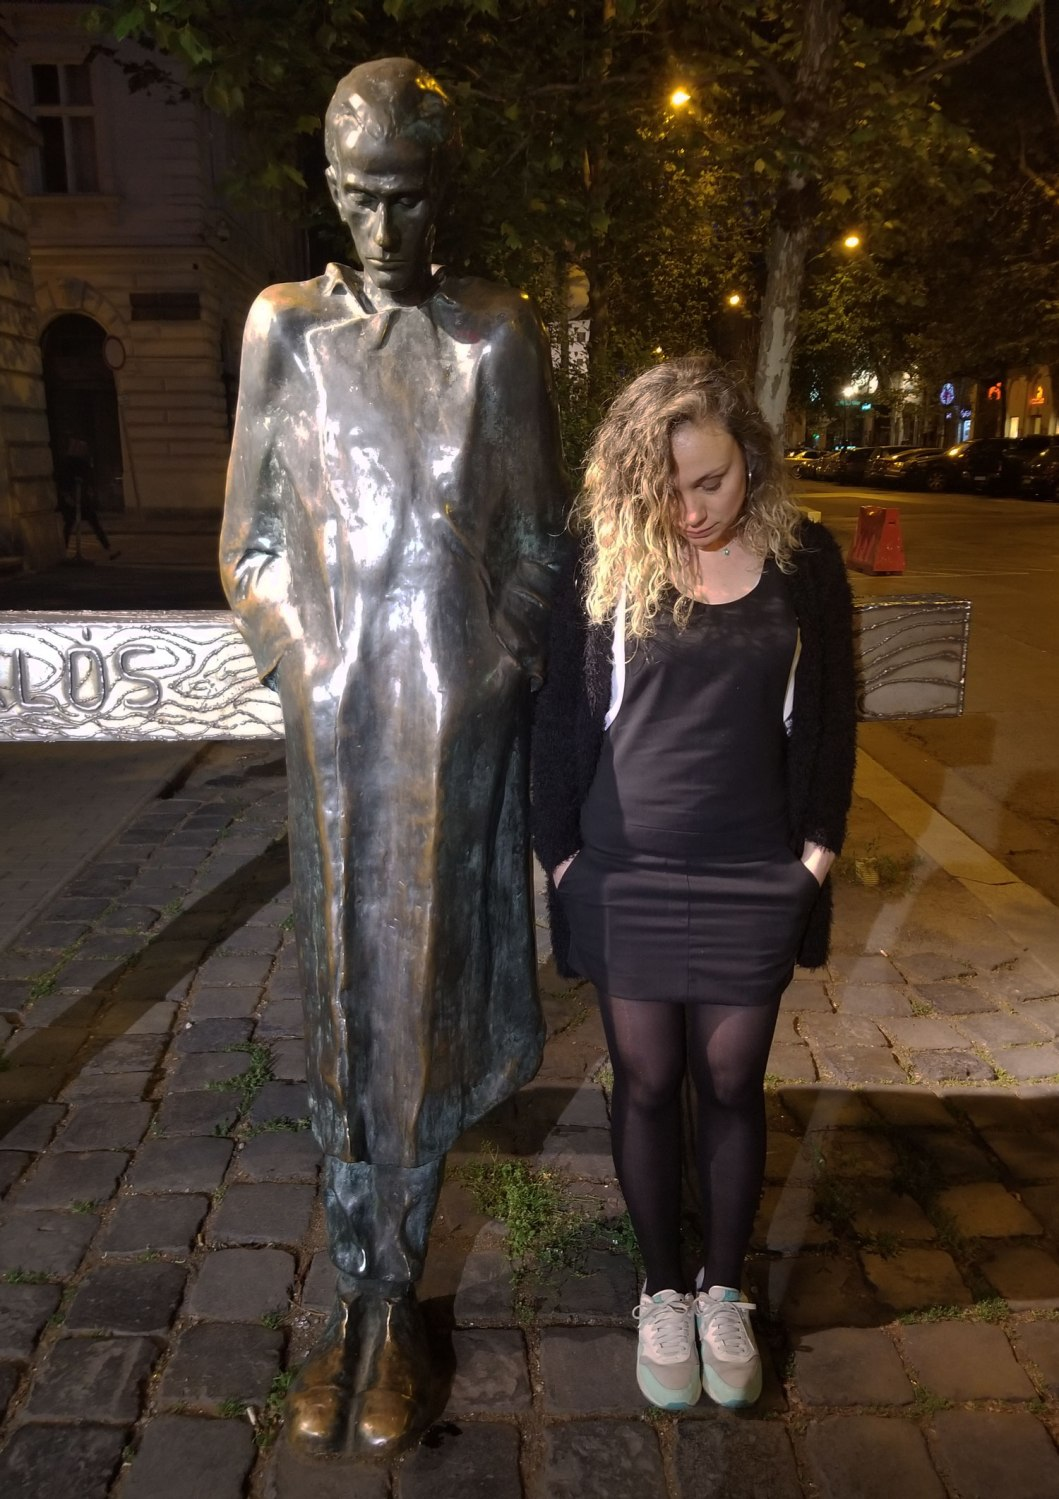 Hungary-Budapest-Statue-And-Lady